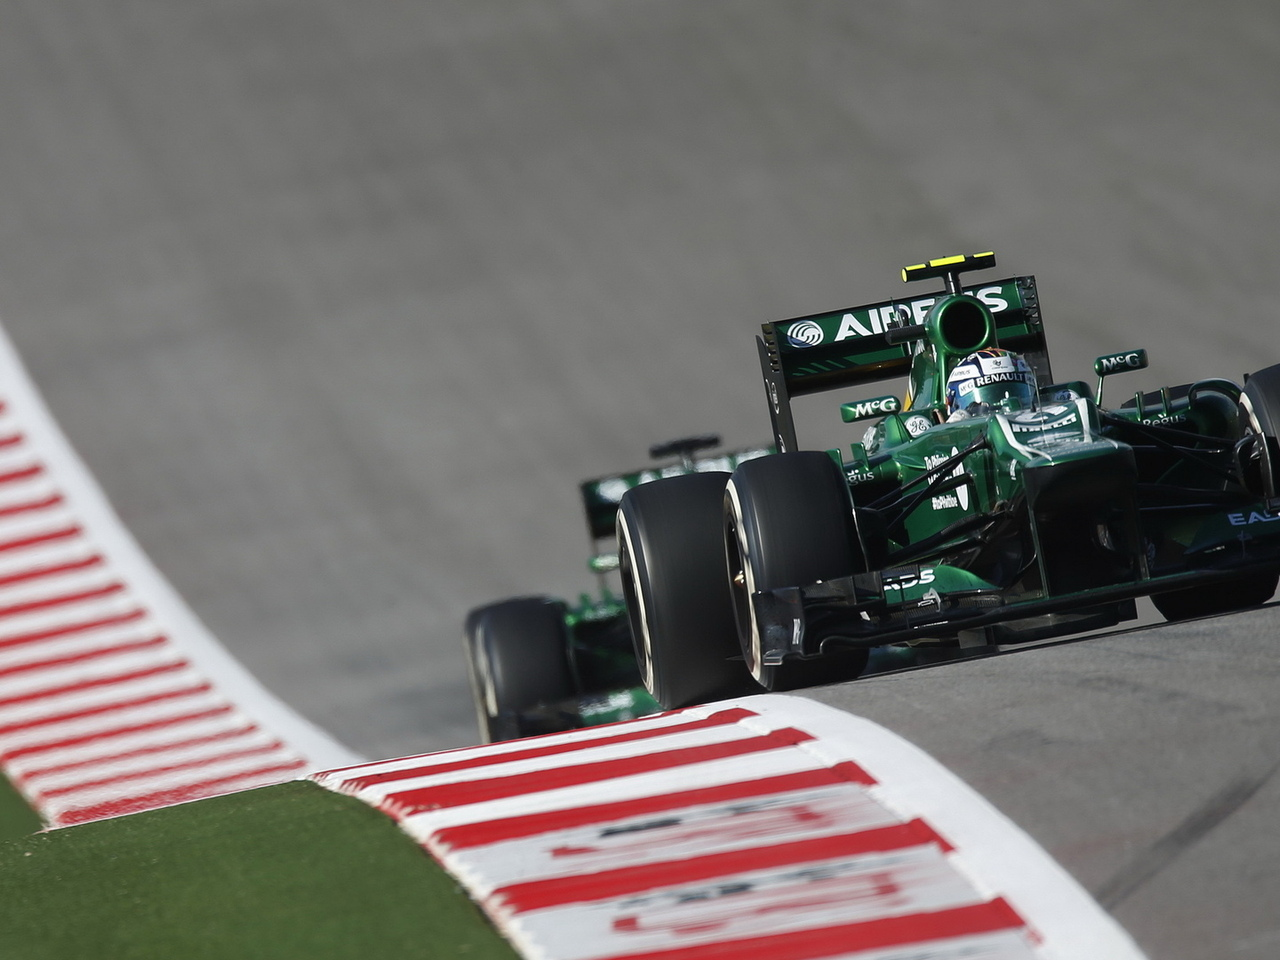 caterham, united states gp, f1 team